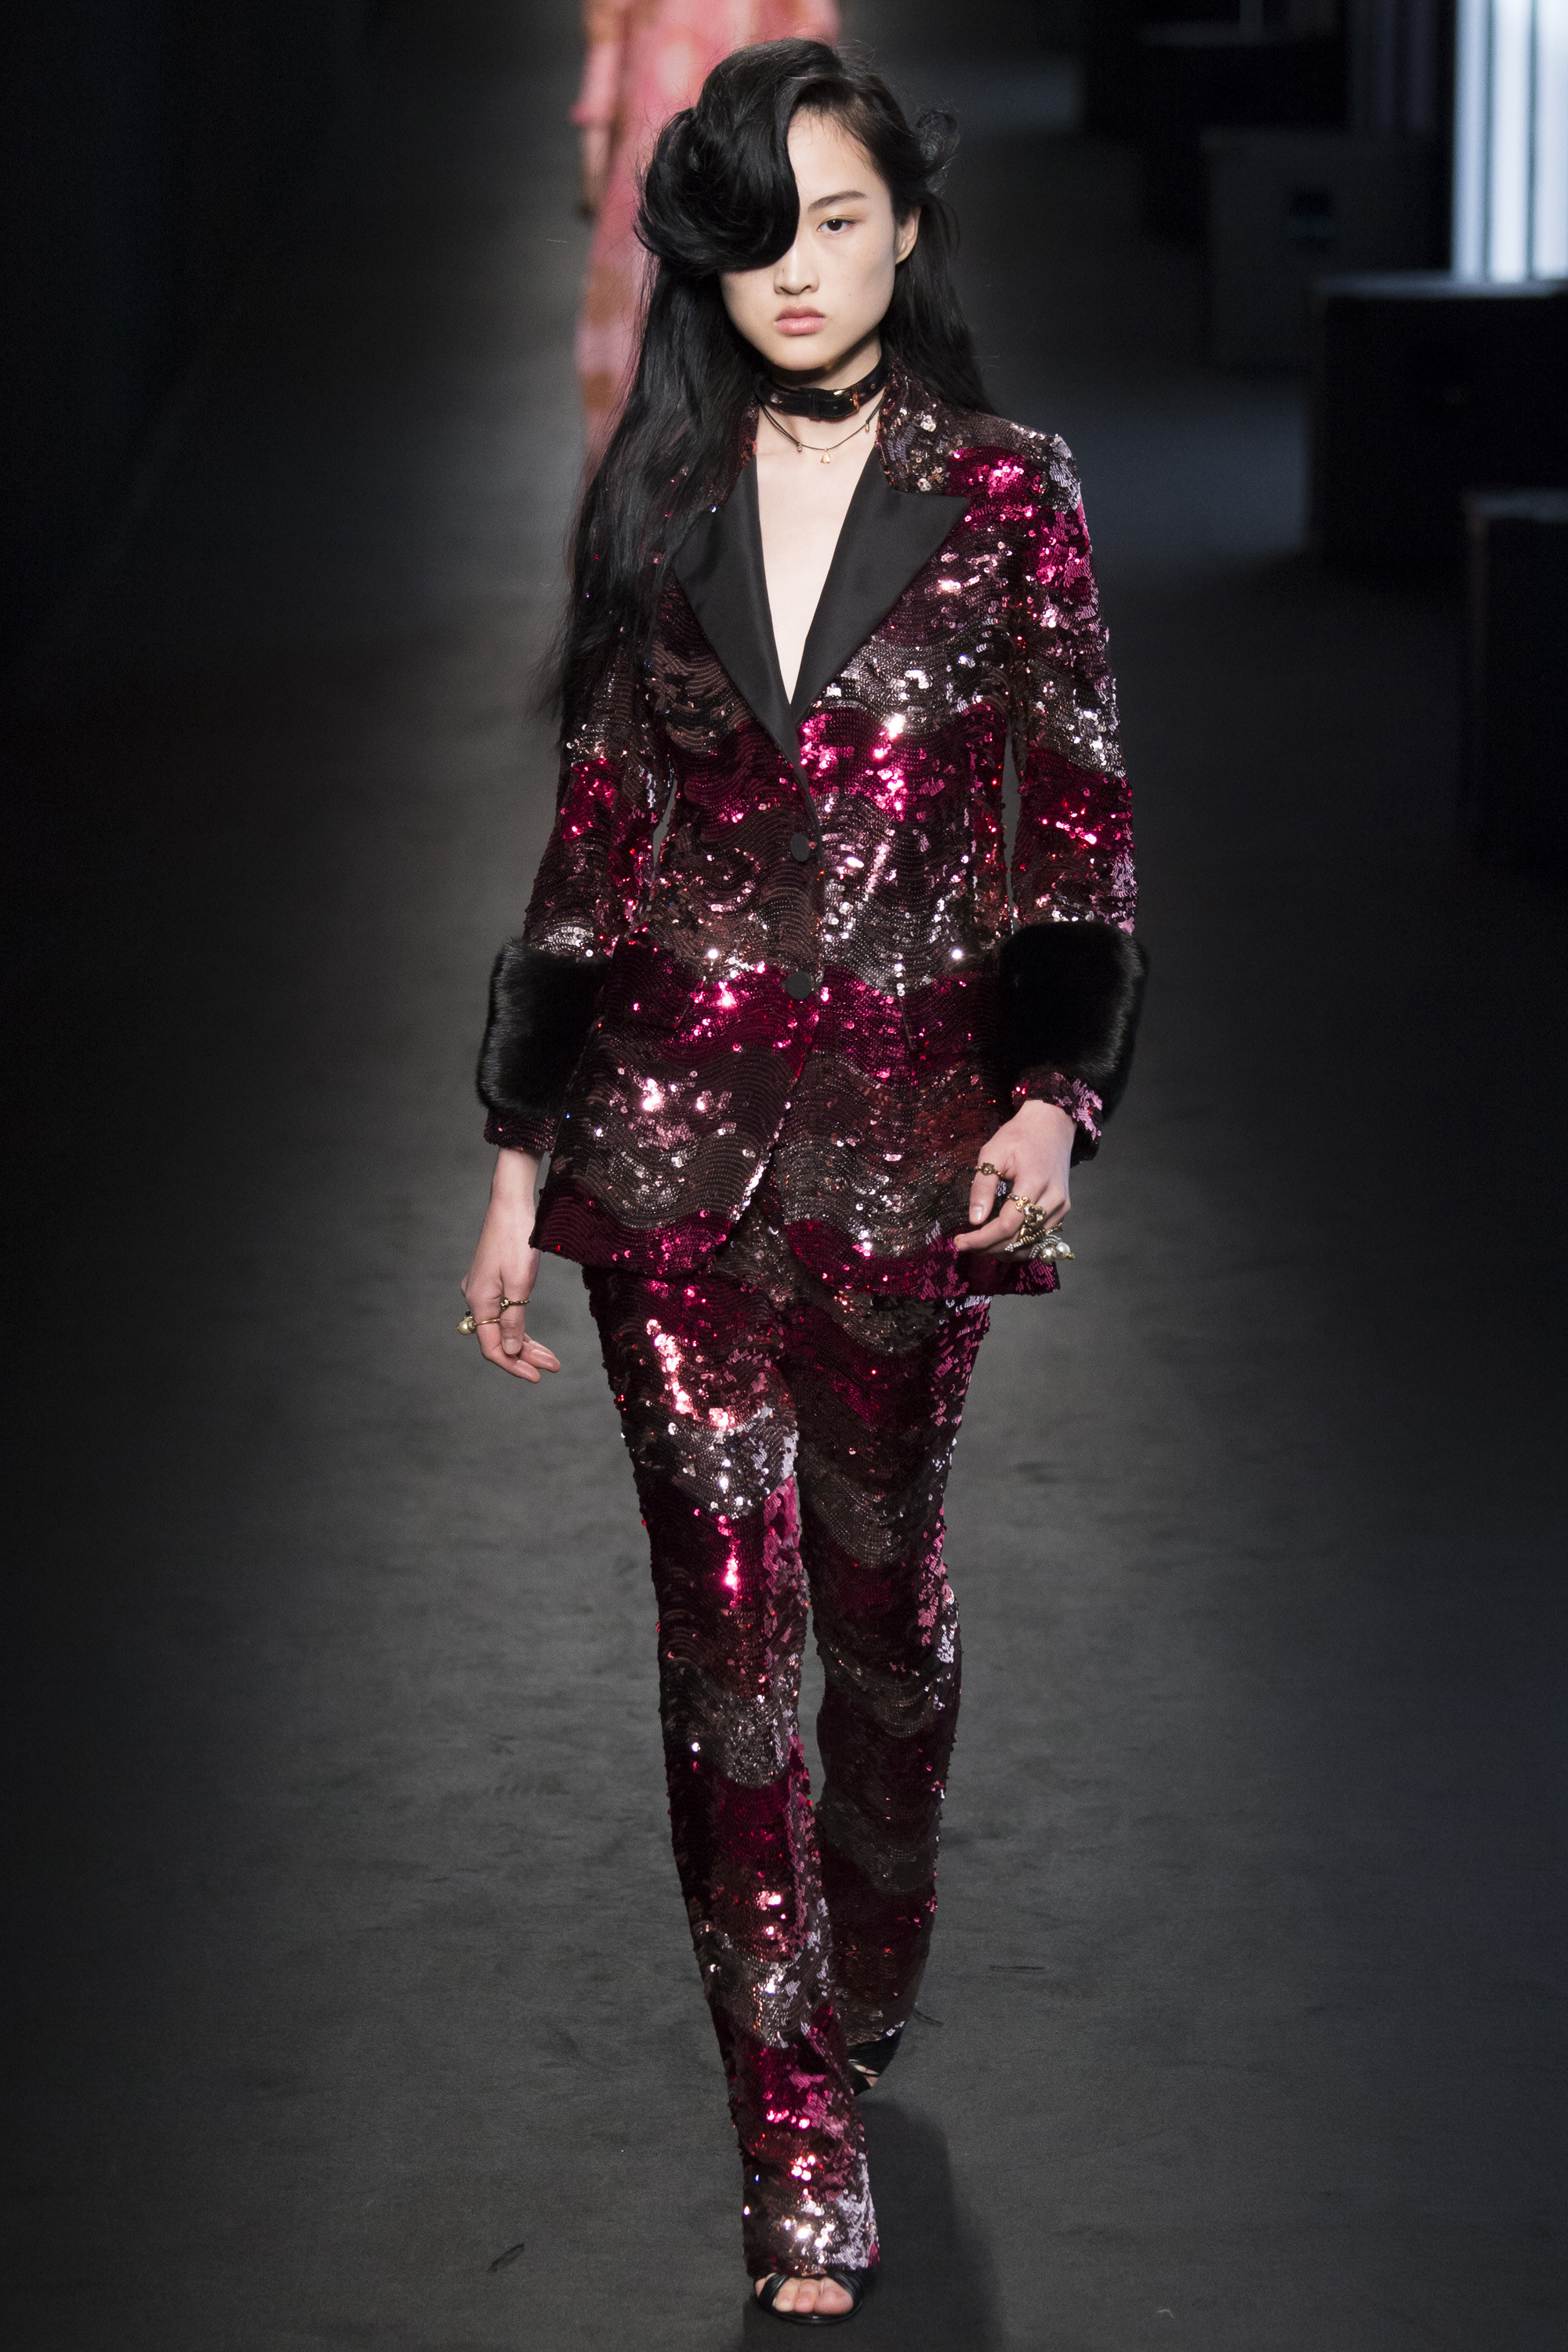 Gucci, Milan                                                                                                  vogue.com